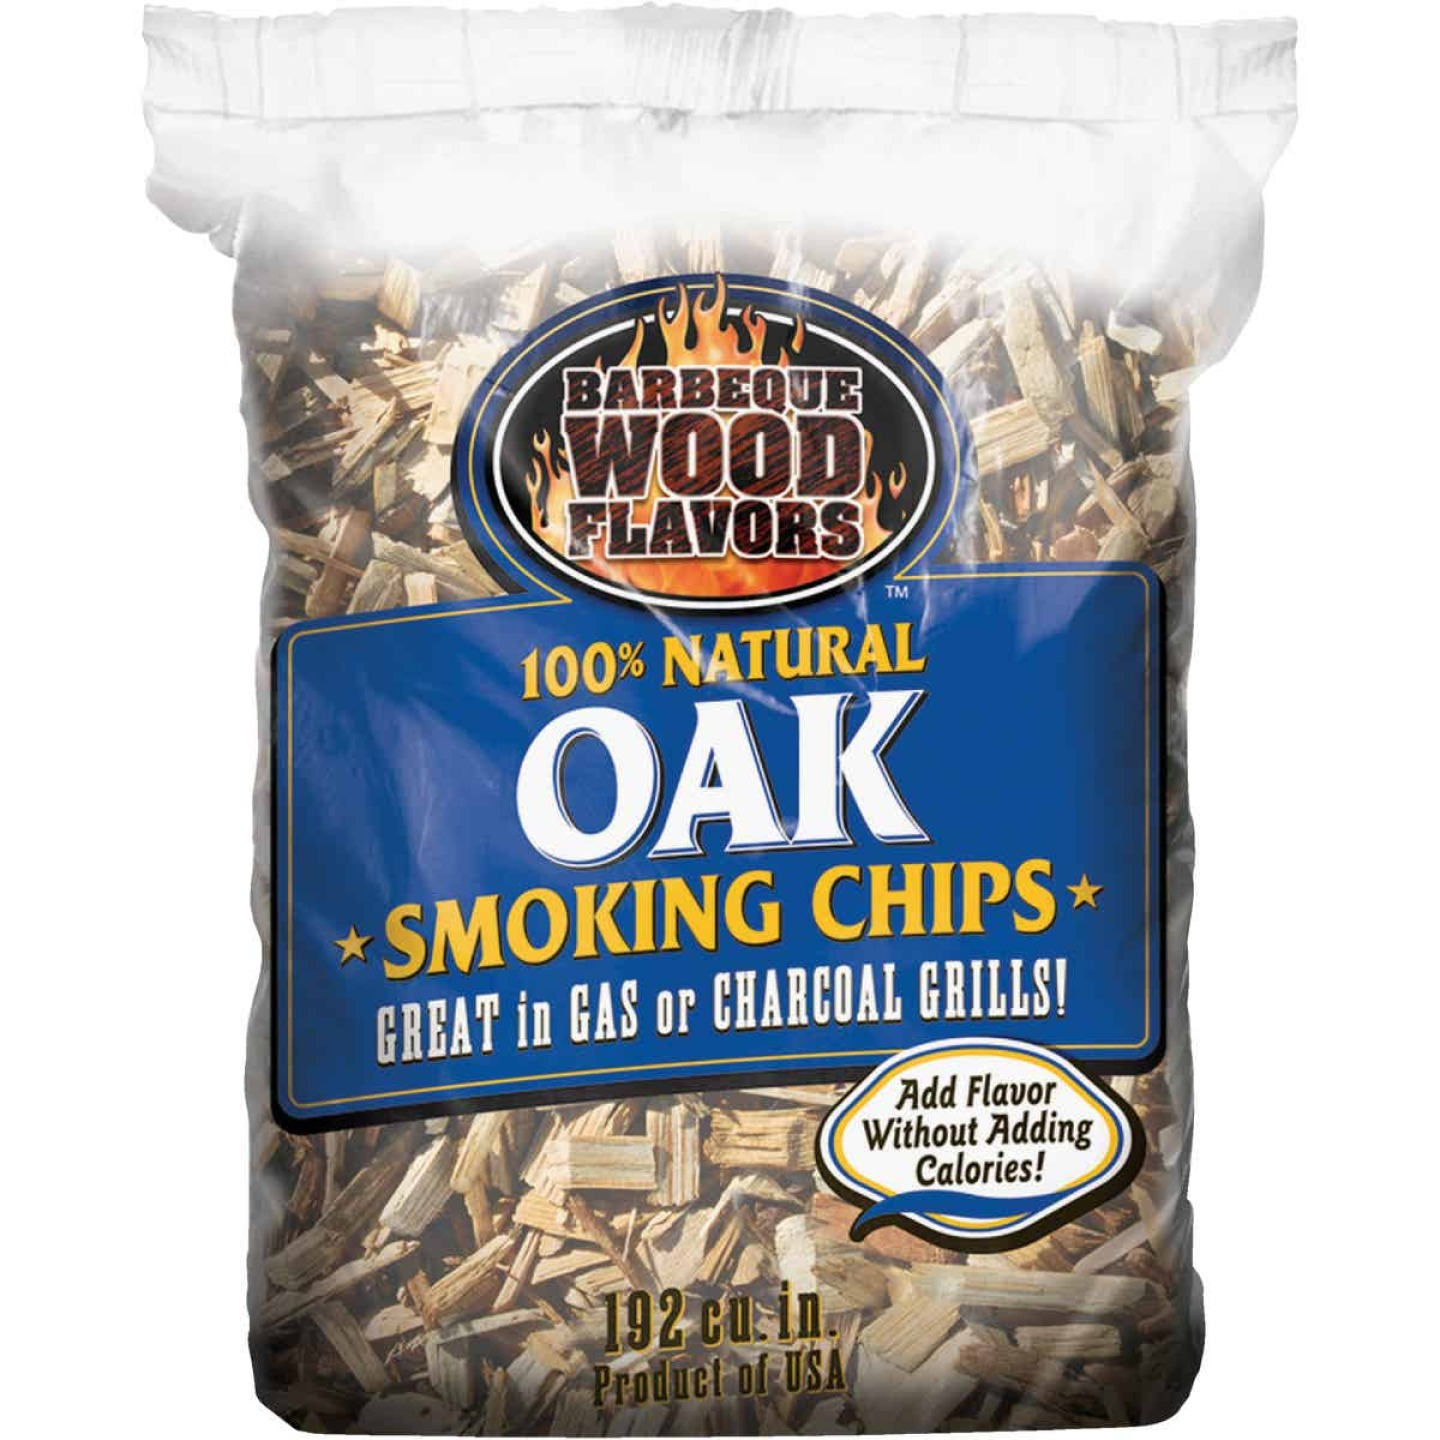 Barbeque Wood Flavors 192 Cu. In. Oak Smoking Chips Image 1